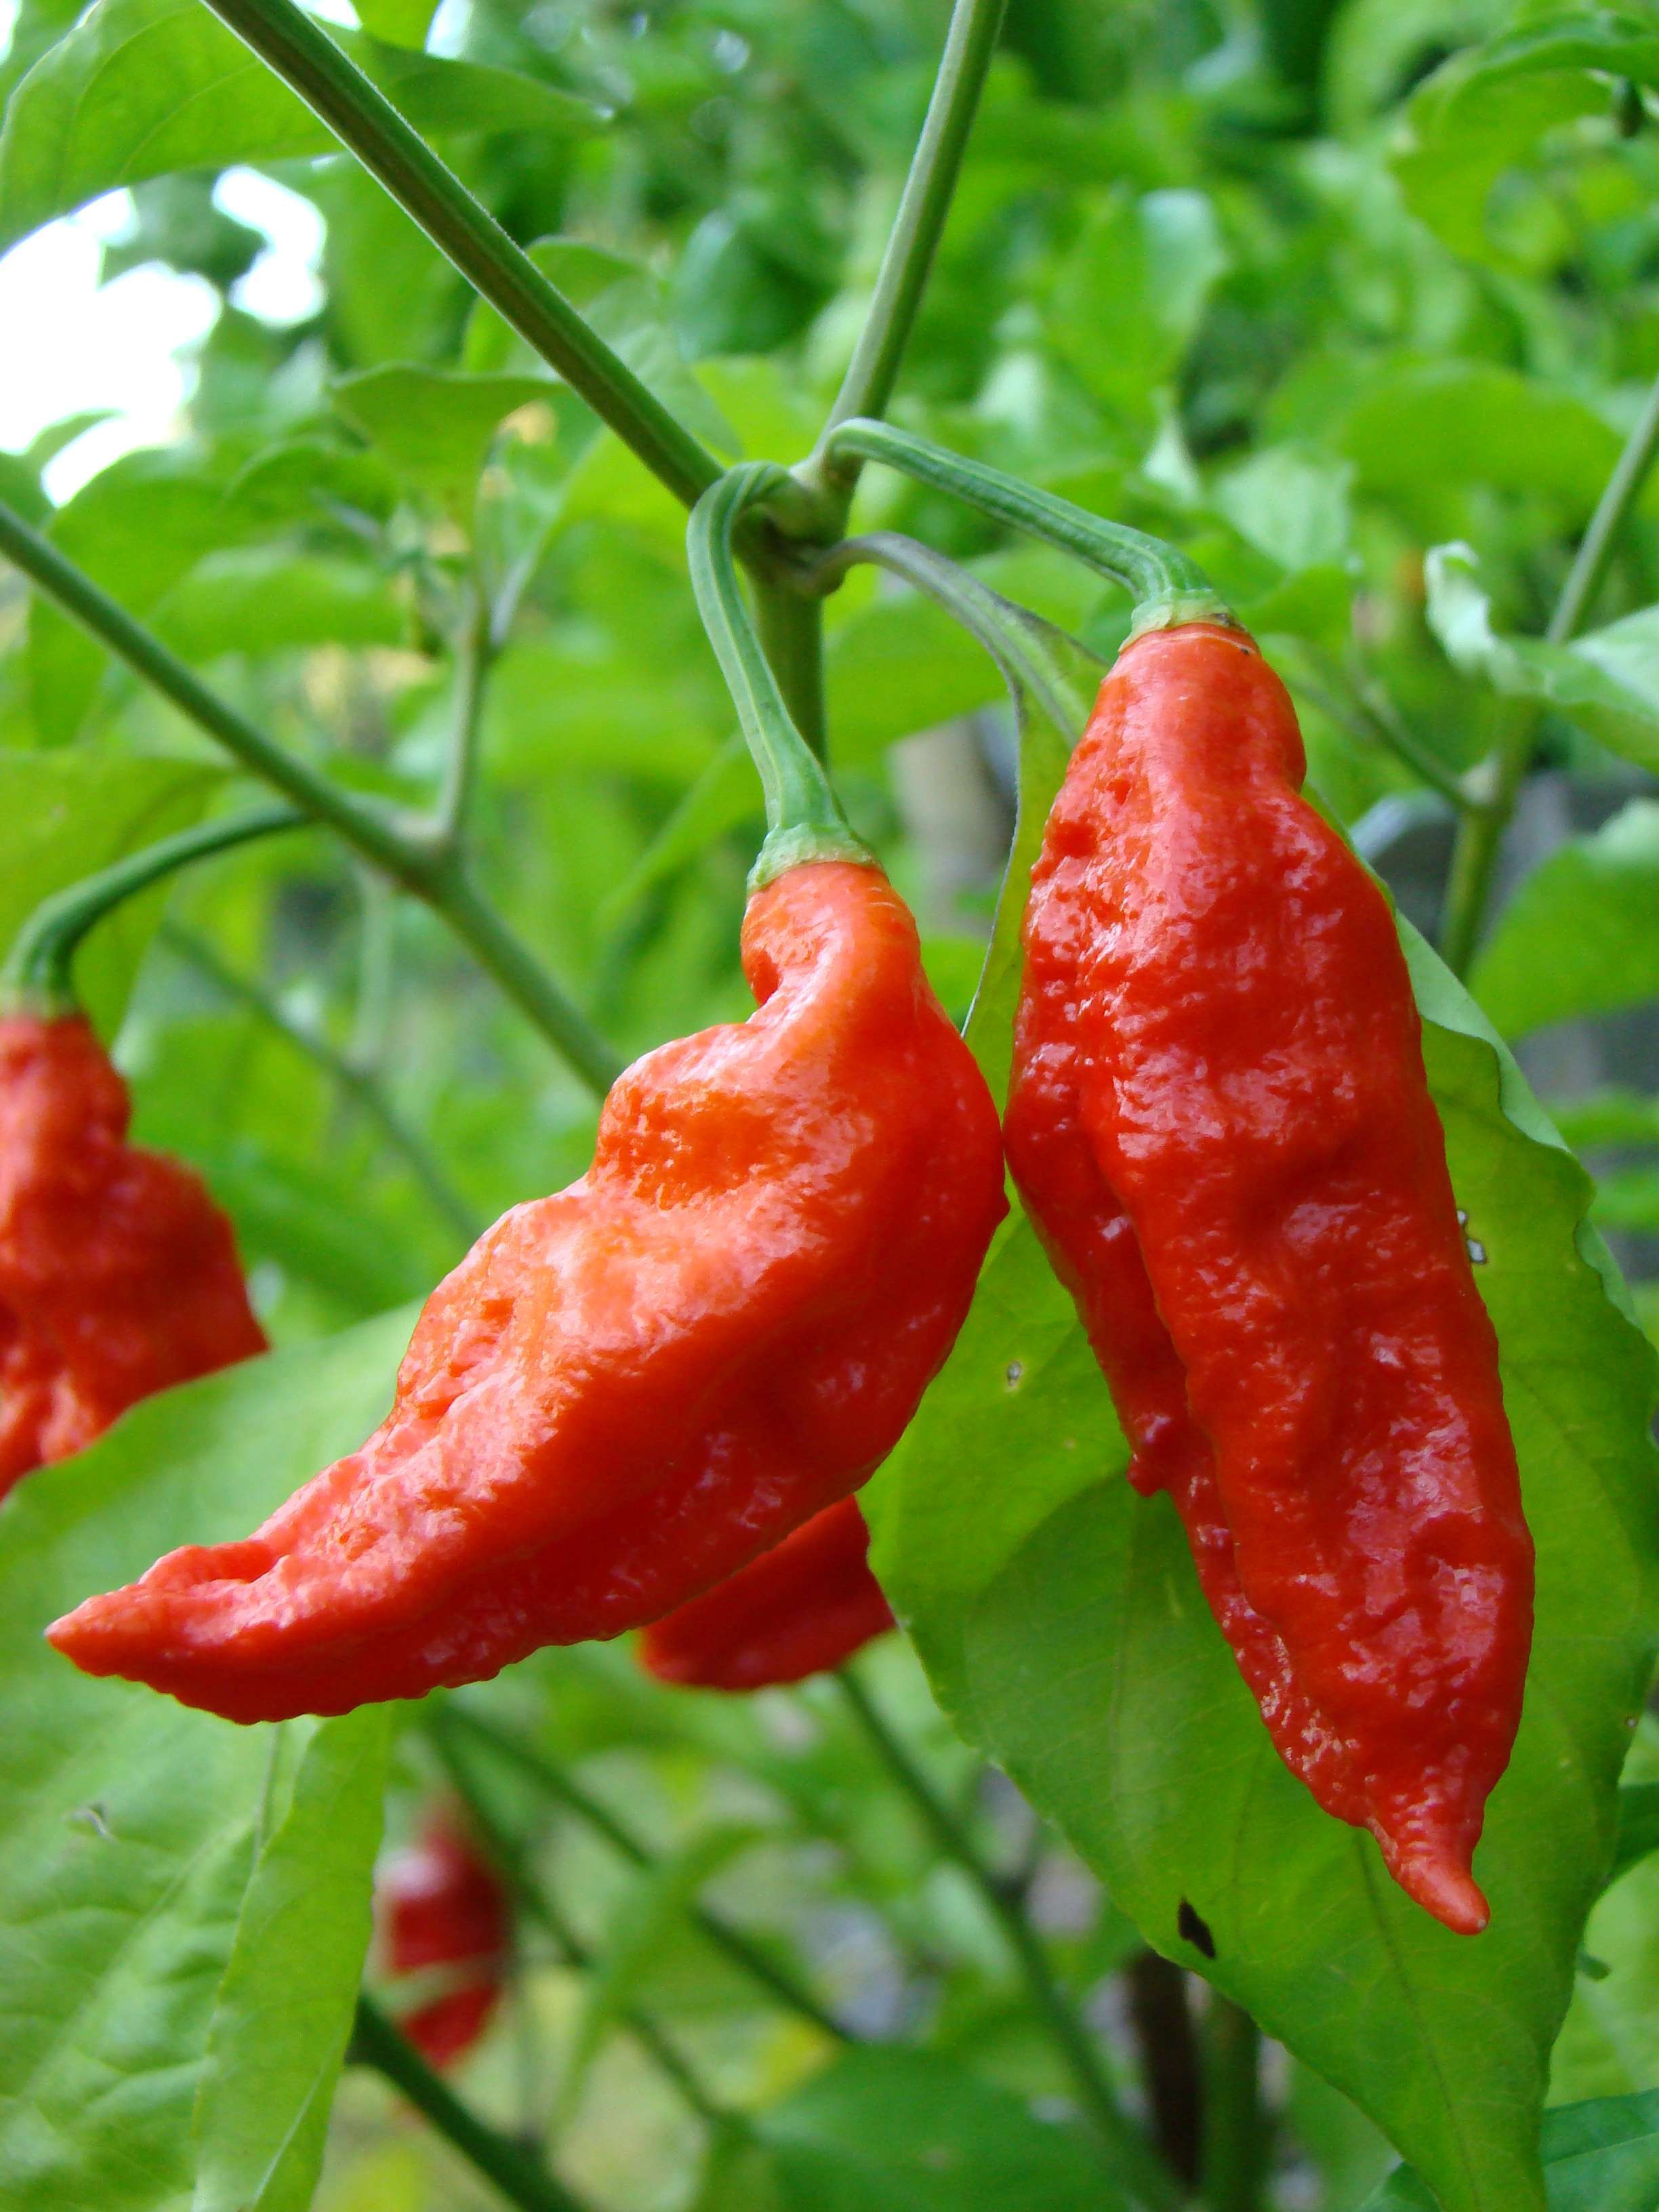 Bhut Jolokia Is No More The World S Hottest Chili